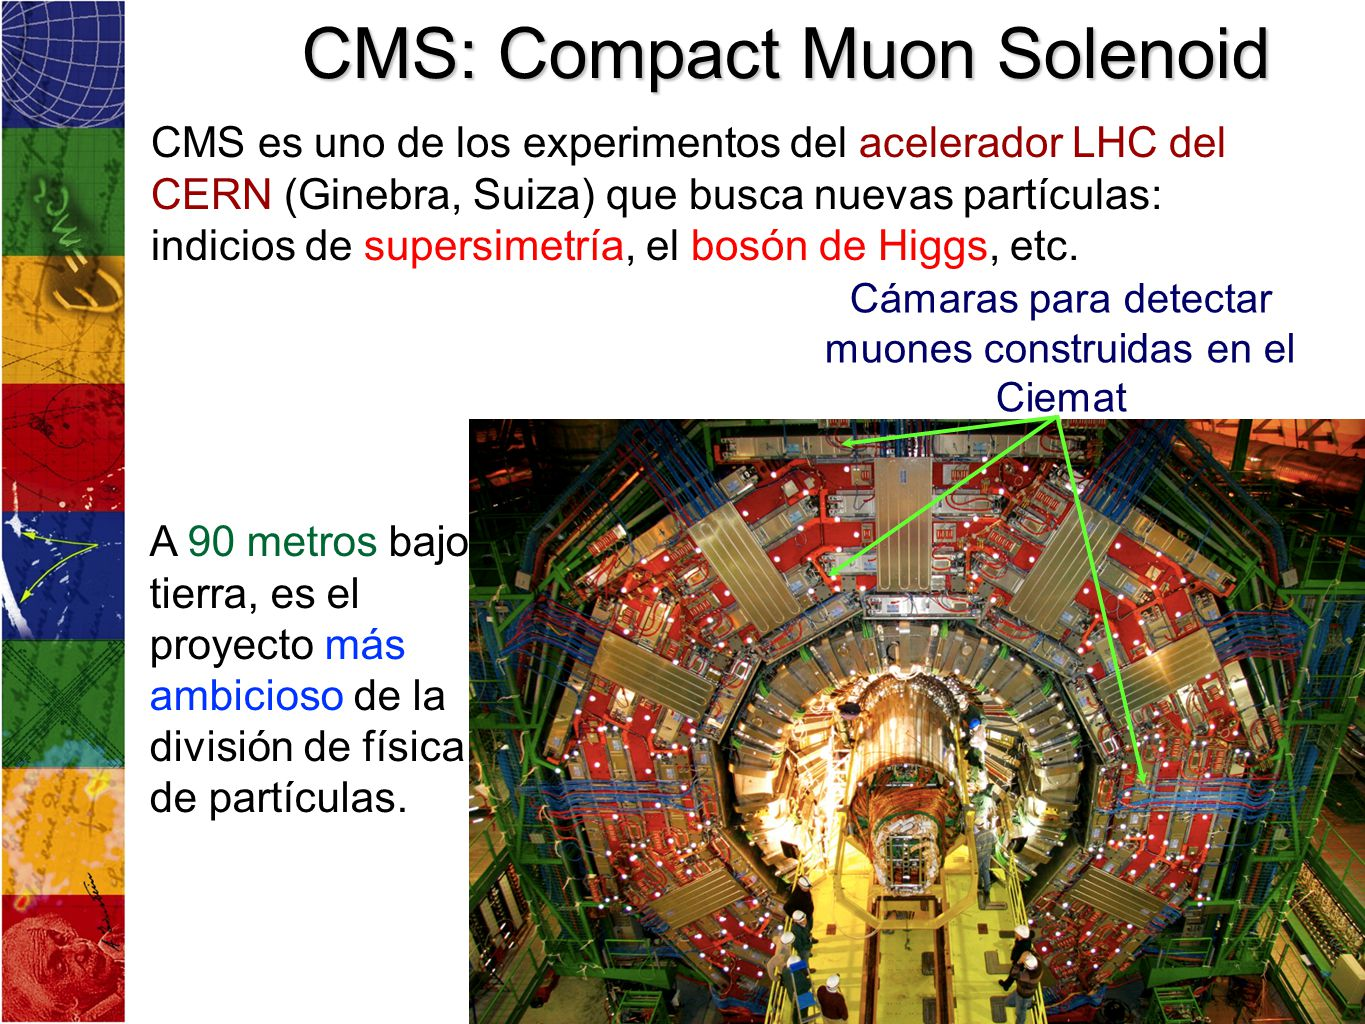 CMS: Compact Muon Solenoid